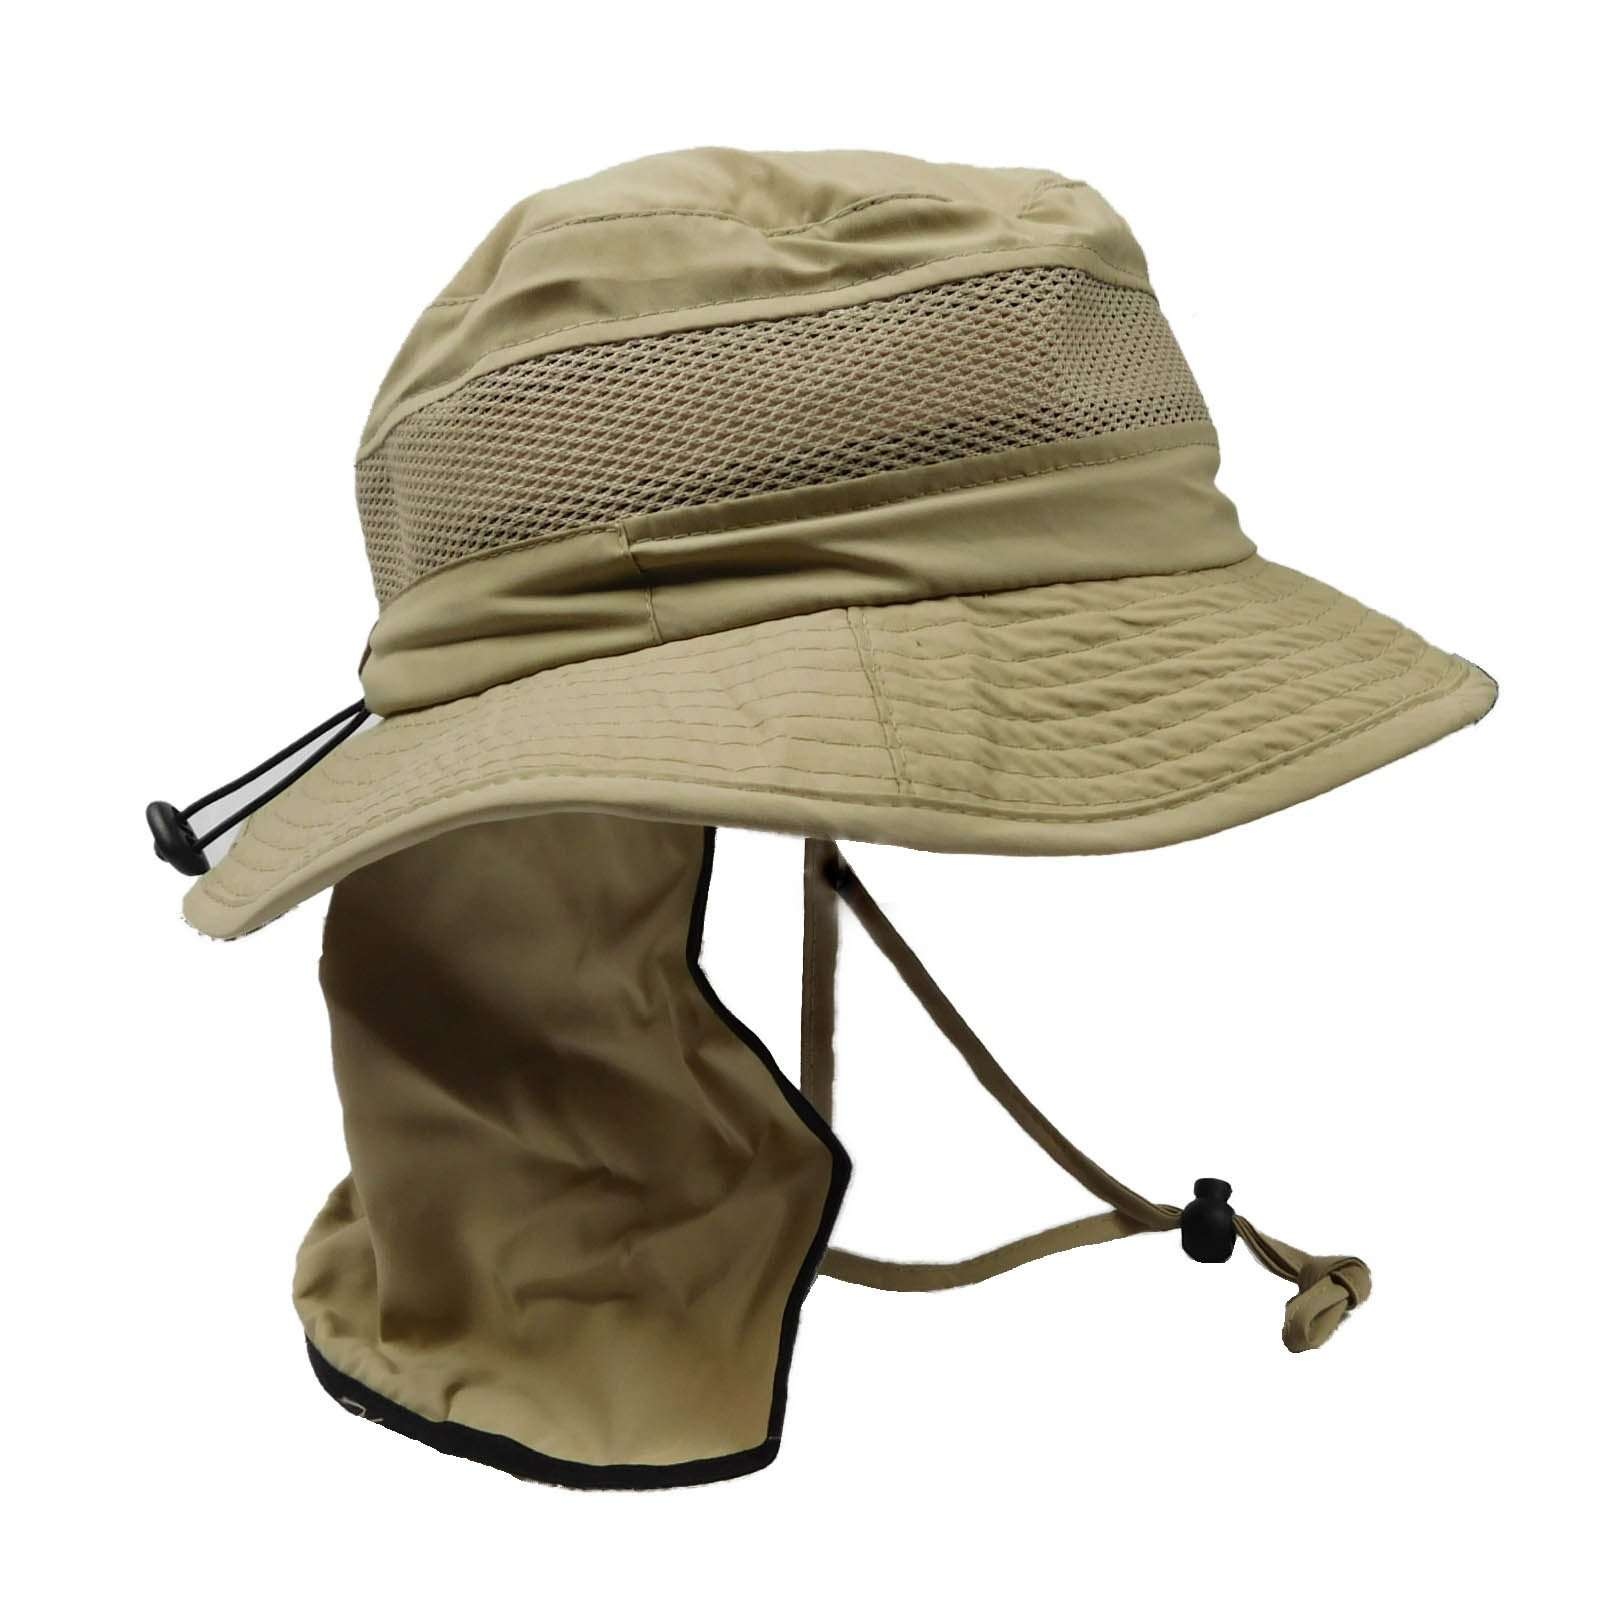 30e040b46f4 Stetson No Fly Zone Fishing Hat-Insect Repellent Sun Shield Bucket Hat